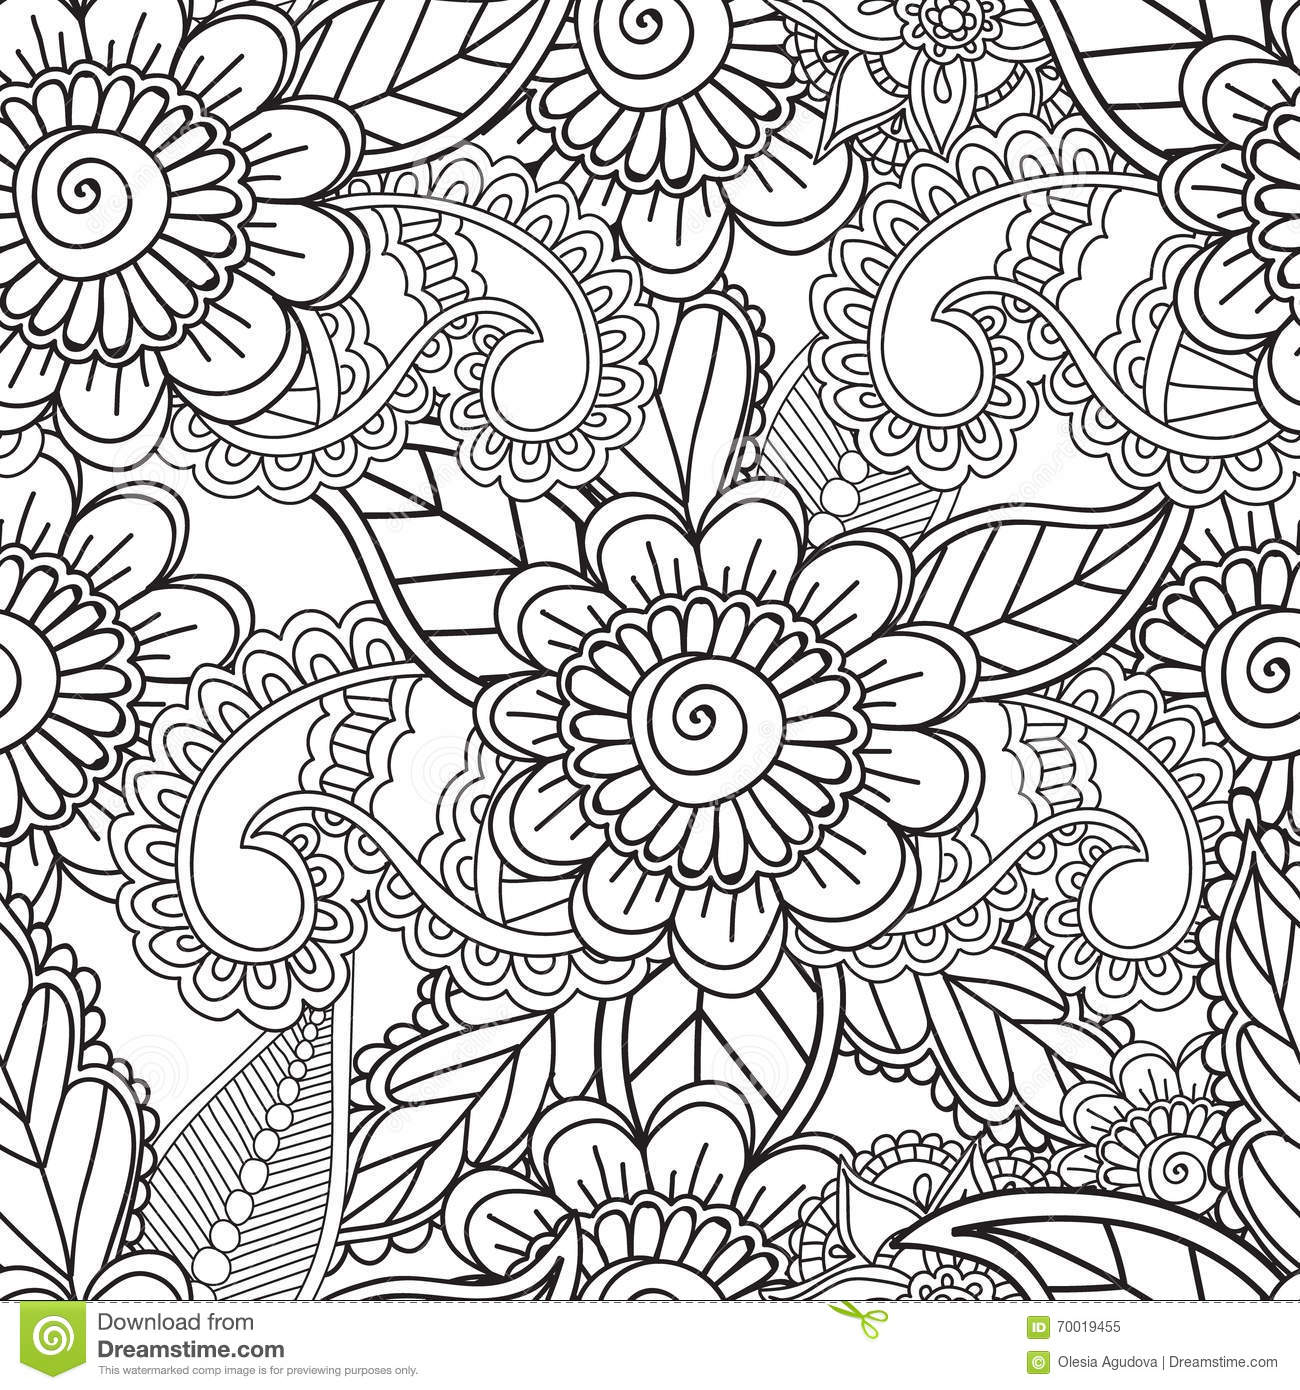 Coloring Pages For Adults. Seamles Henna Mehndi Doodles ...